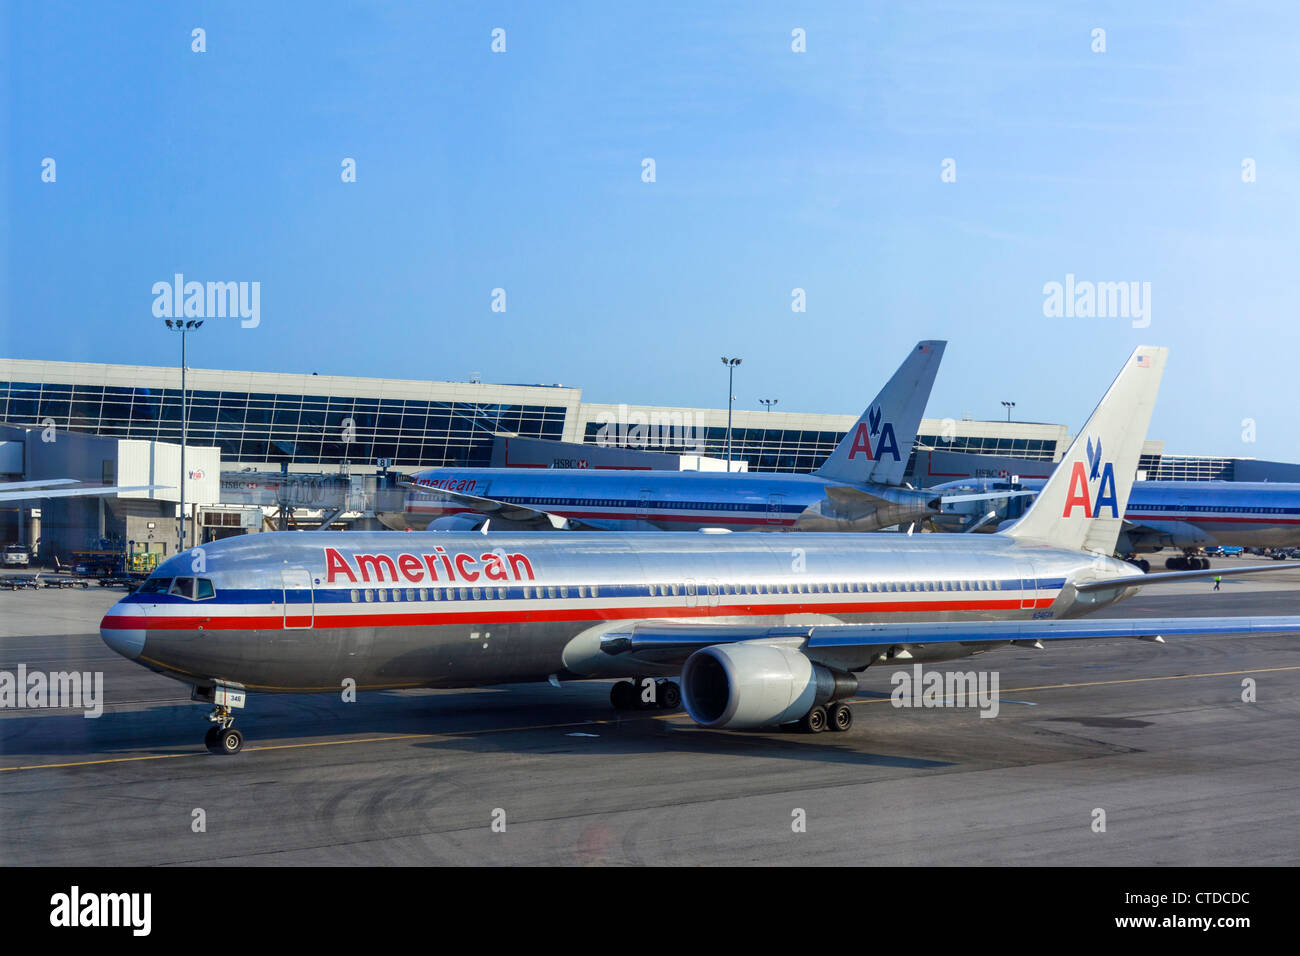 An American Airlines Boeing 767-300 aircraft taxiing from the gate at JFK Airport, New York, USA - Stock Image